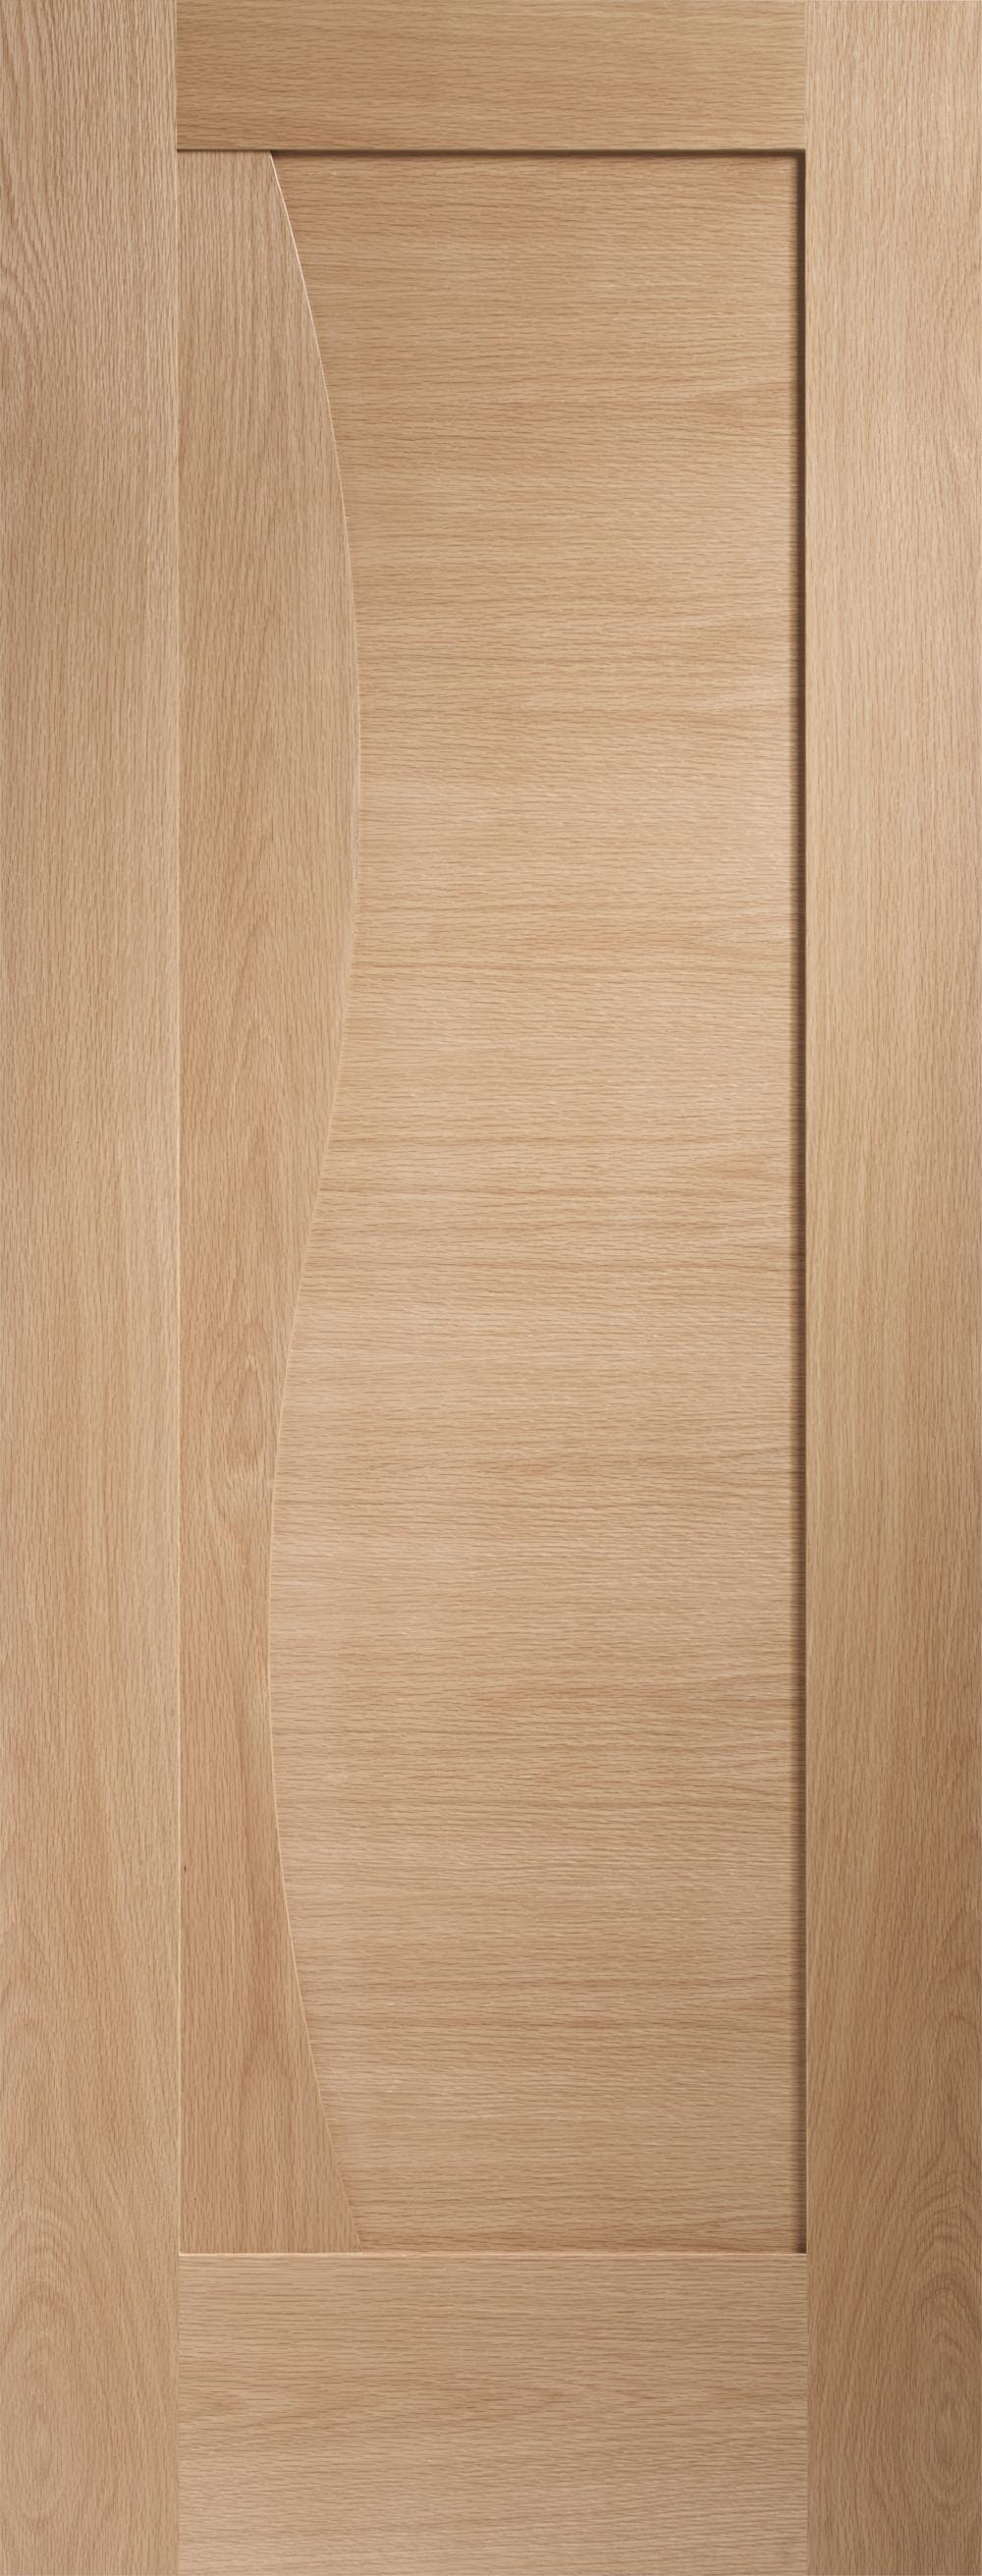 Emilia Oak - Xl Joinery Image